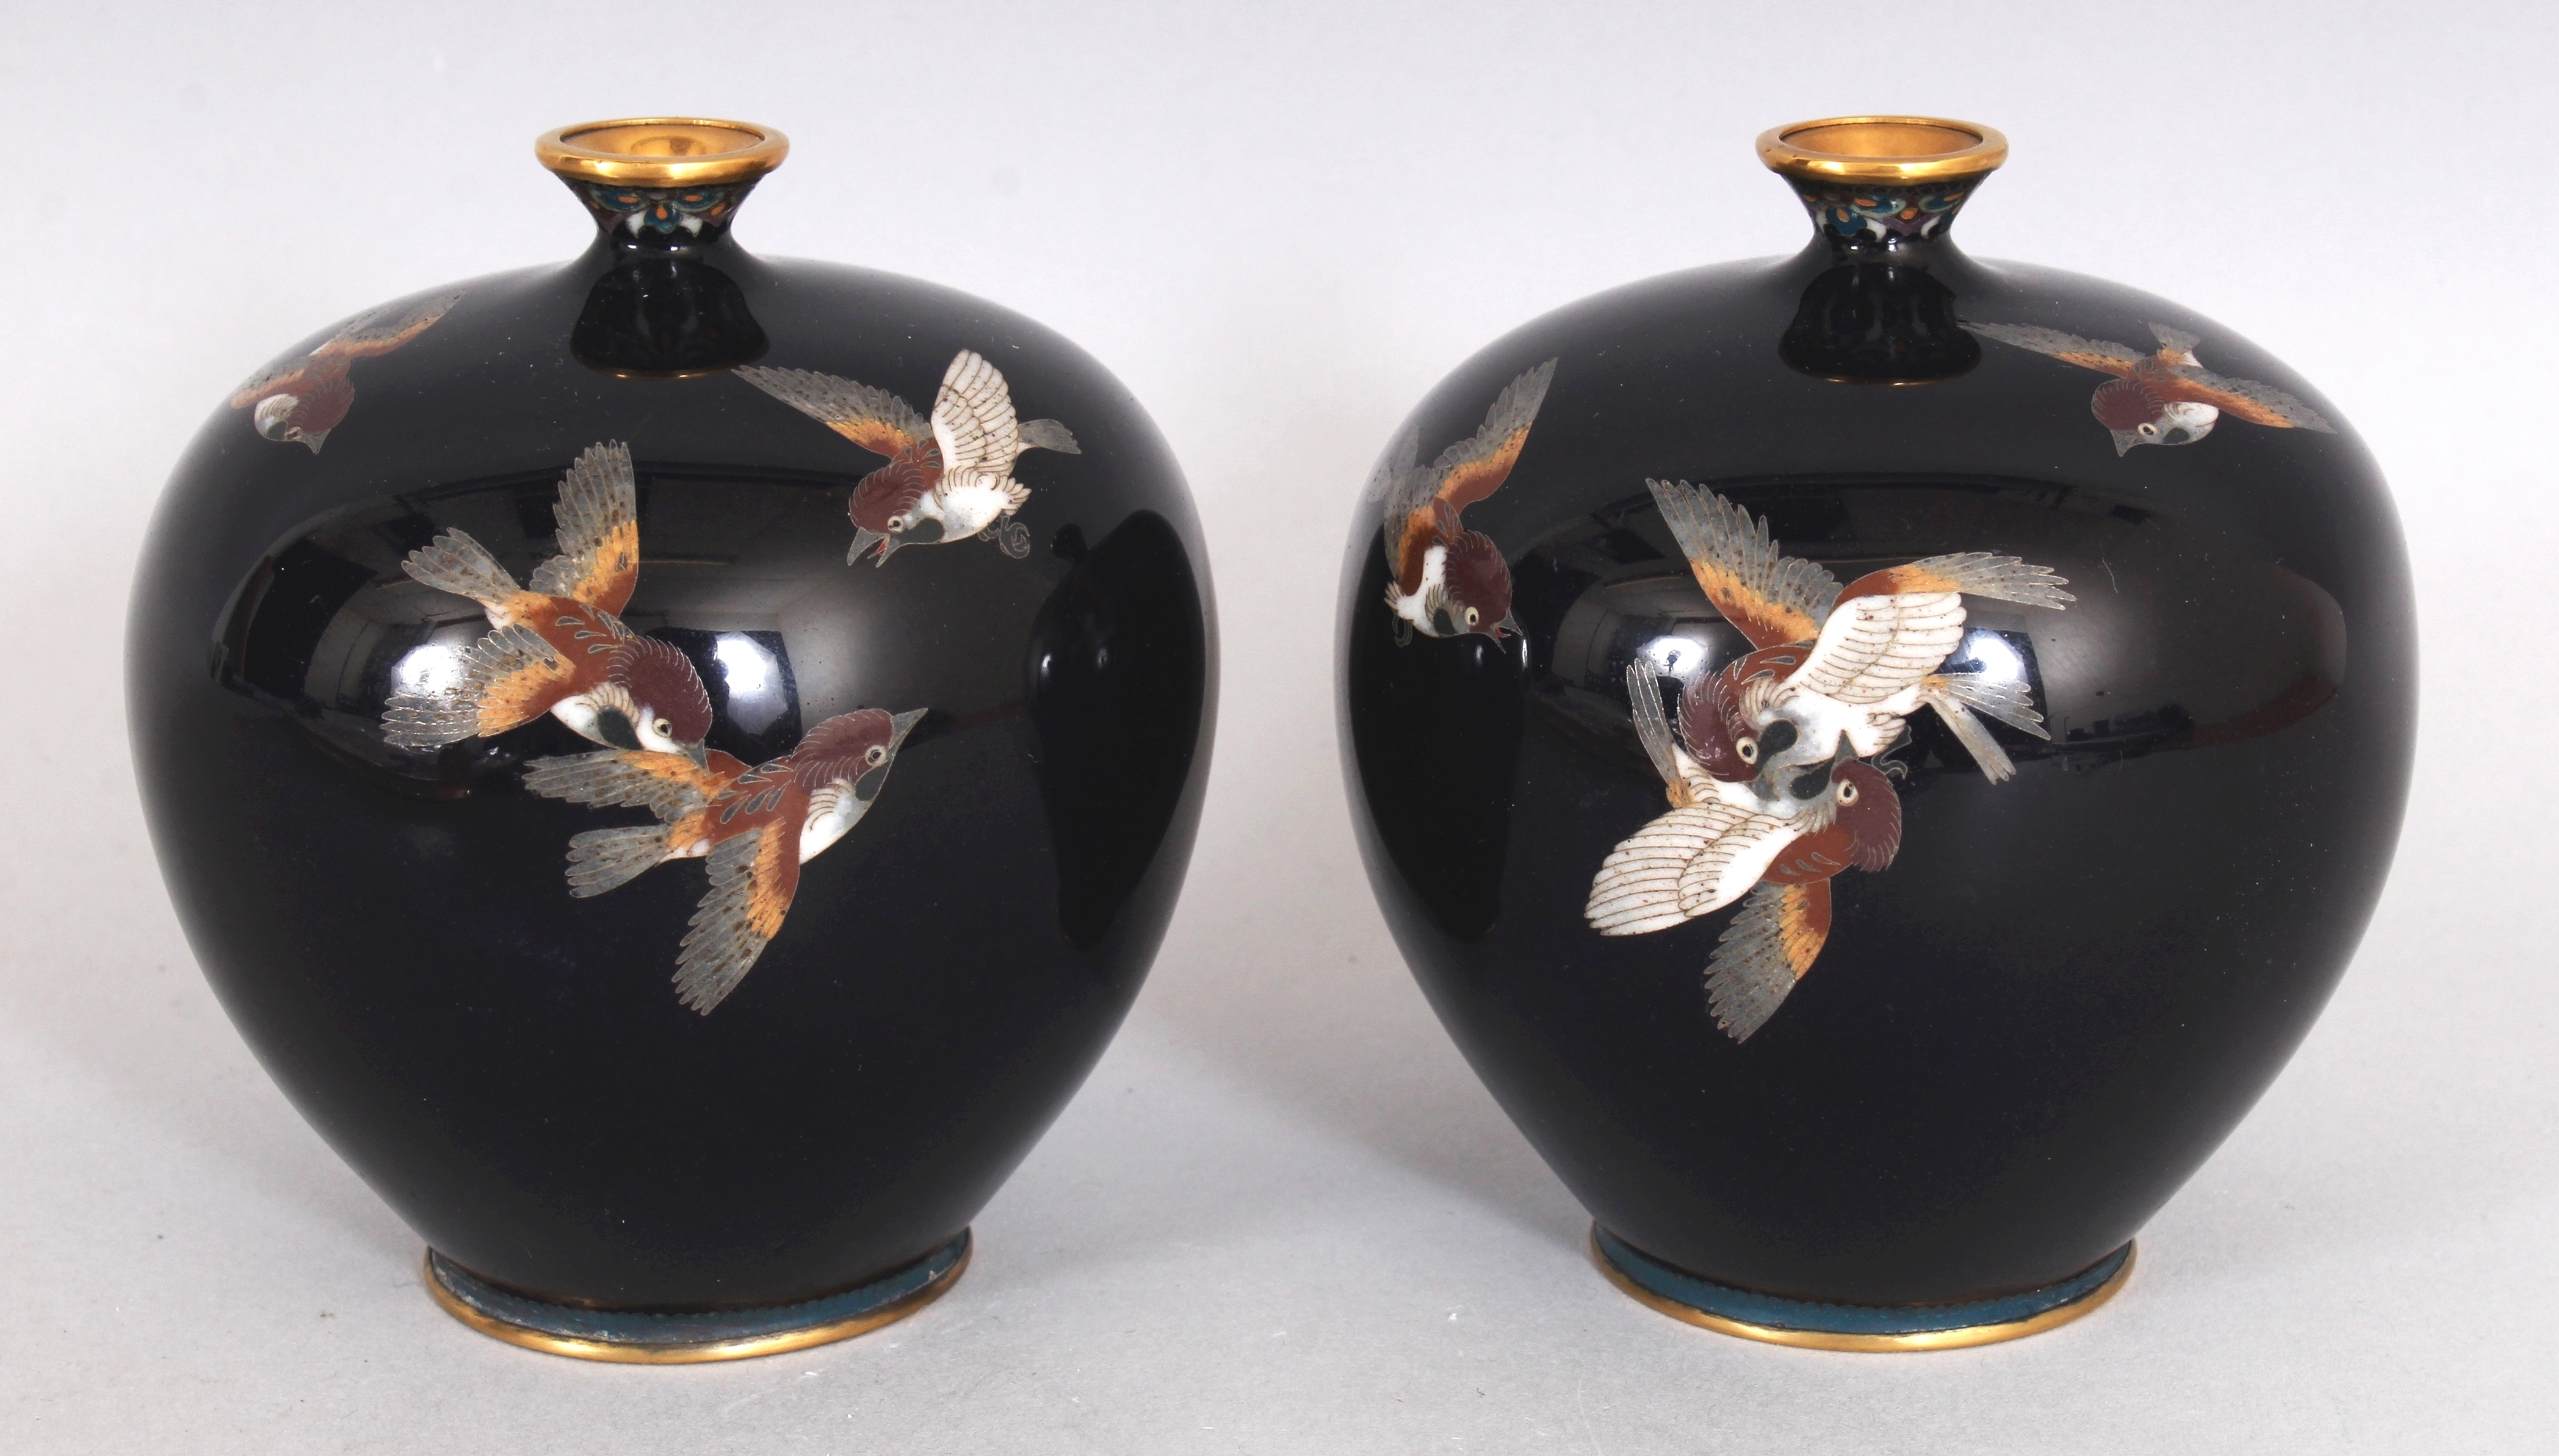 A pair of fine quality Japanese Meiji period midnight blue ground cloisonne vases by Inaba Nanaho/Auctioneers and Valuers